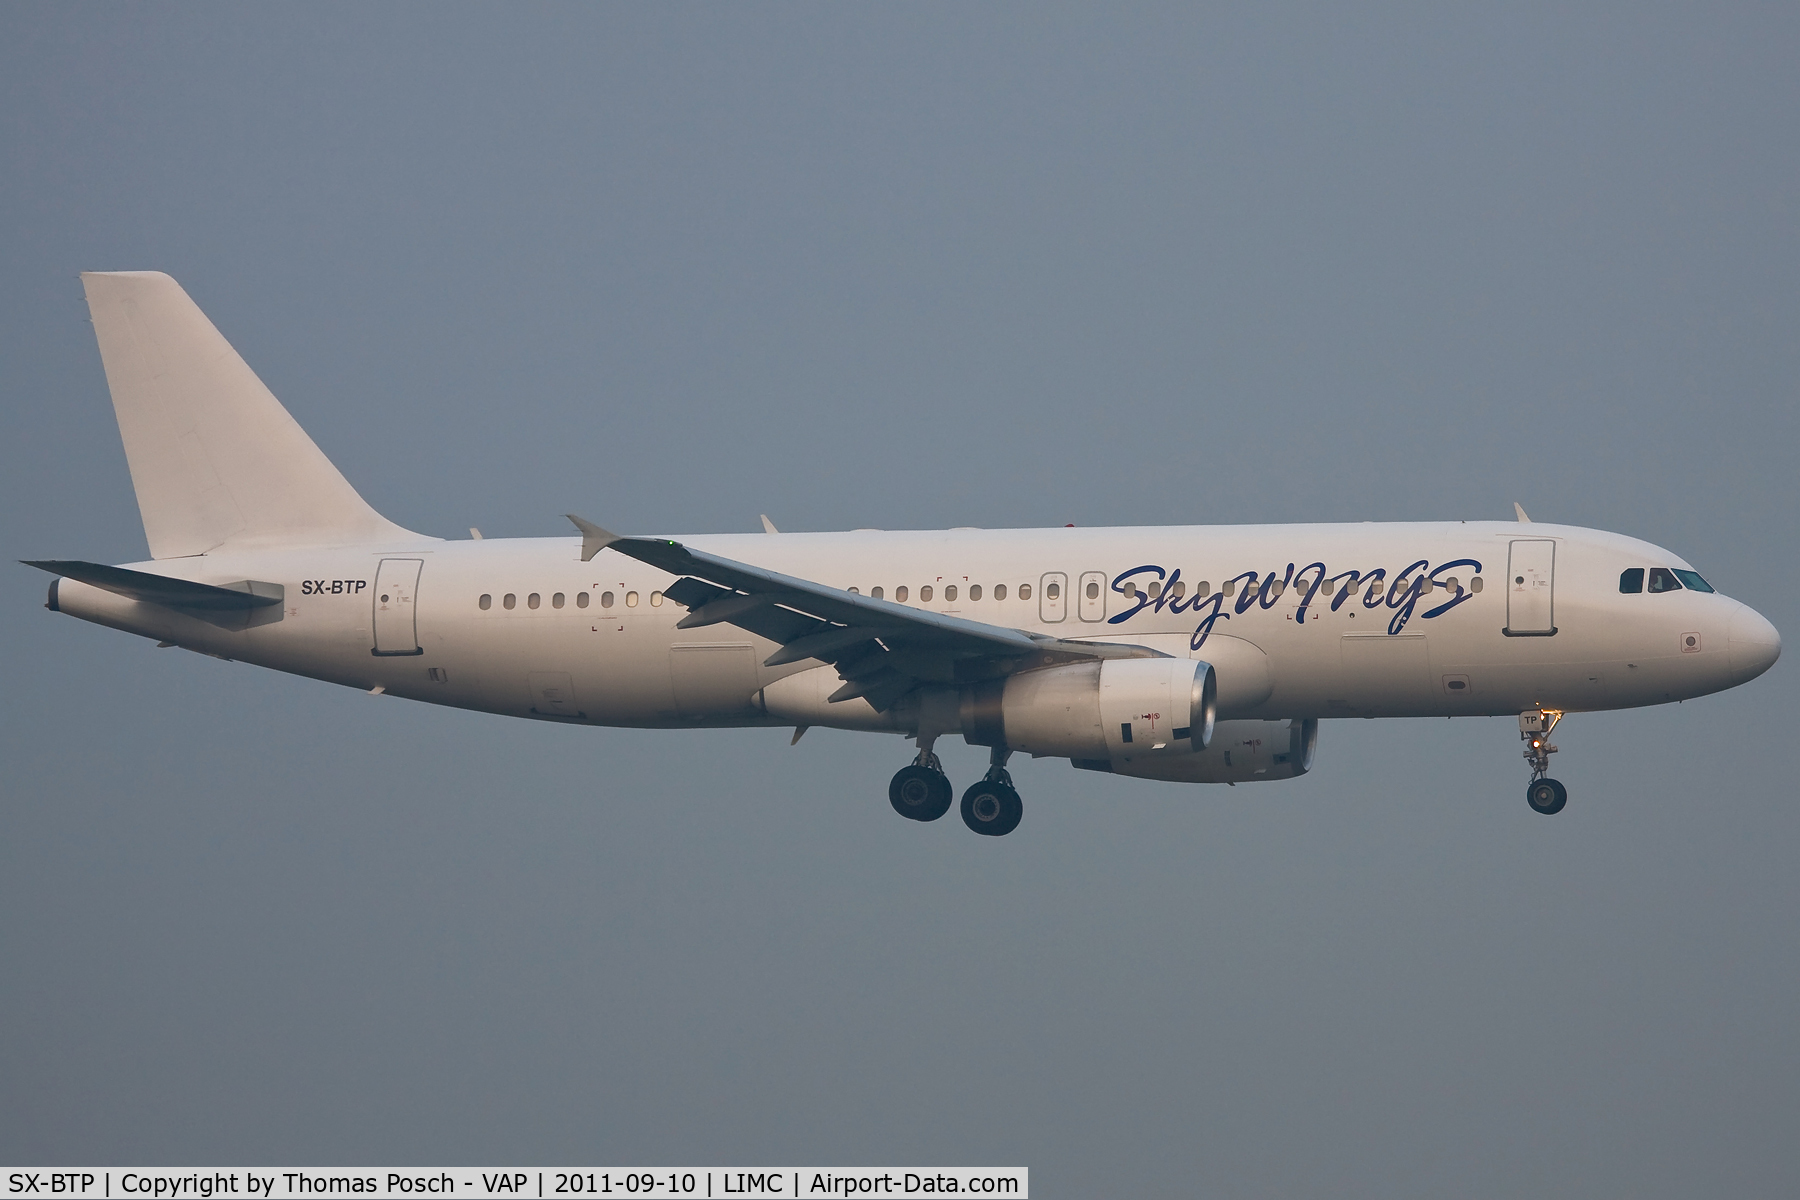 SX-BTP, 1992 Airbus A320-231 C/N 376, Sky Wings Airlines